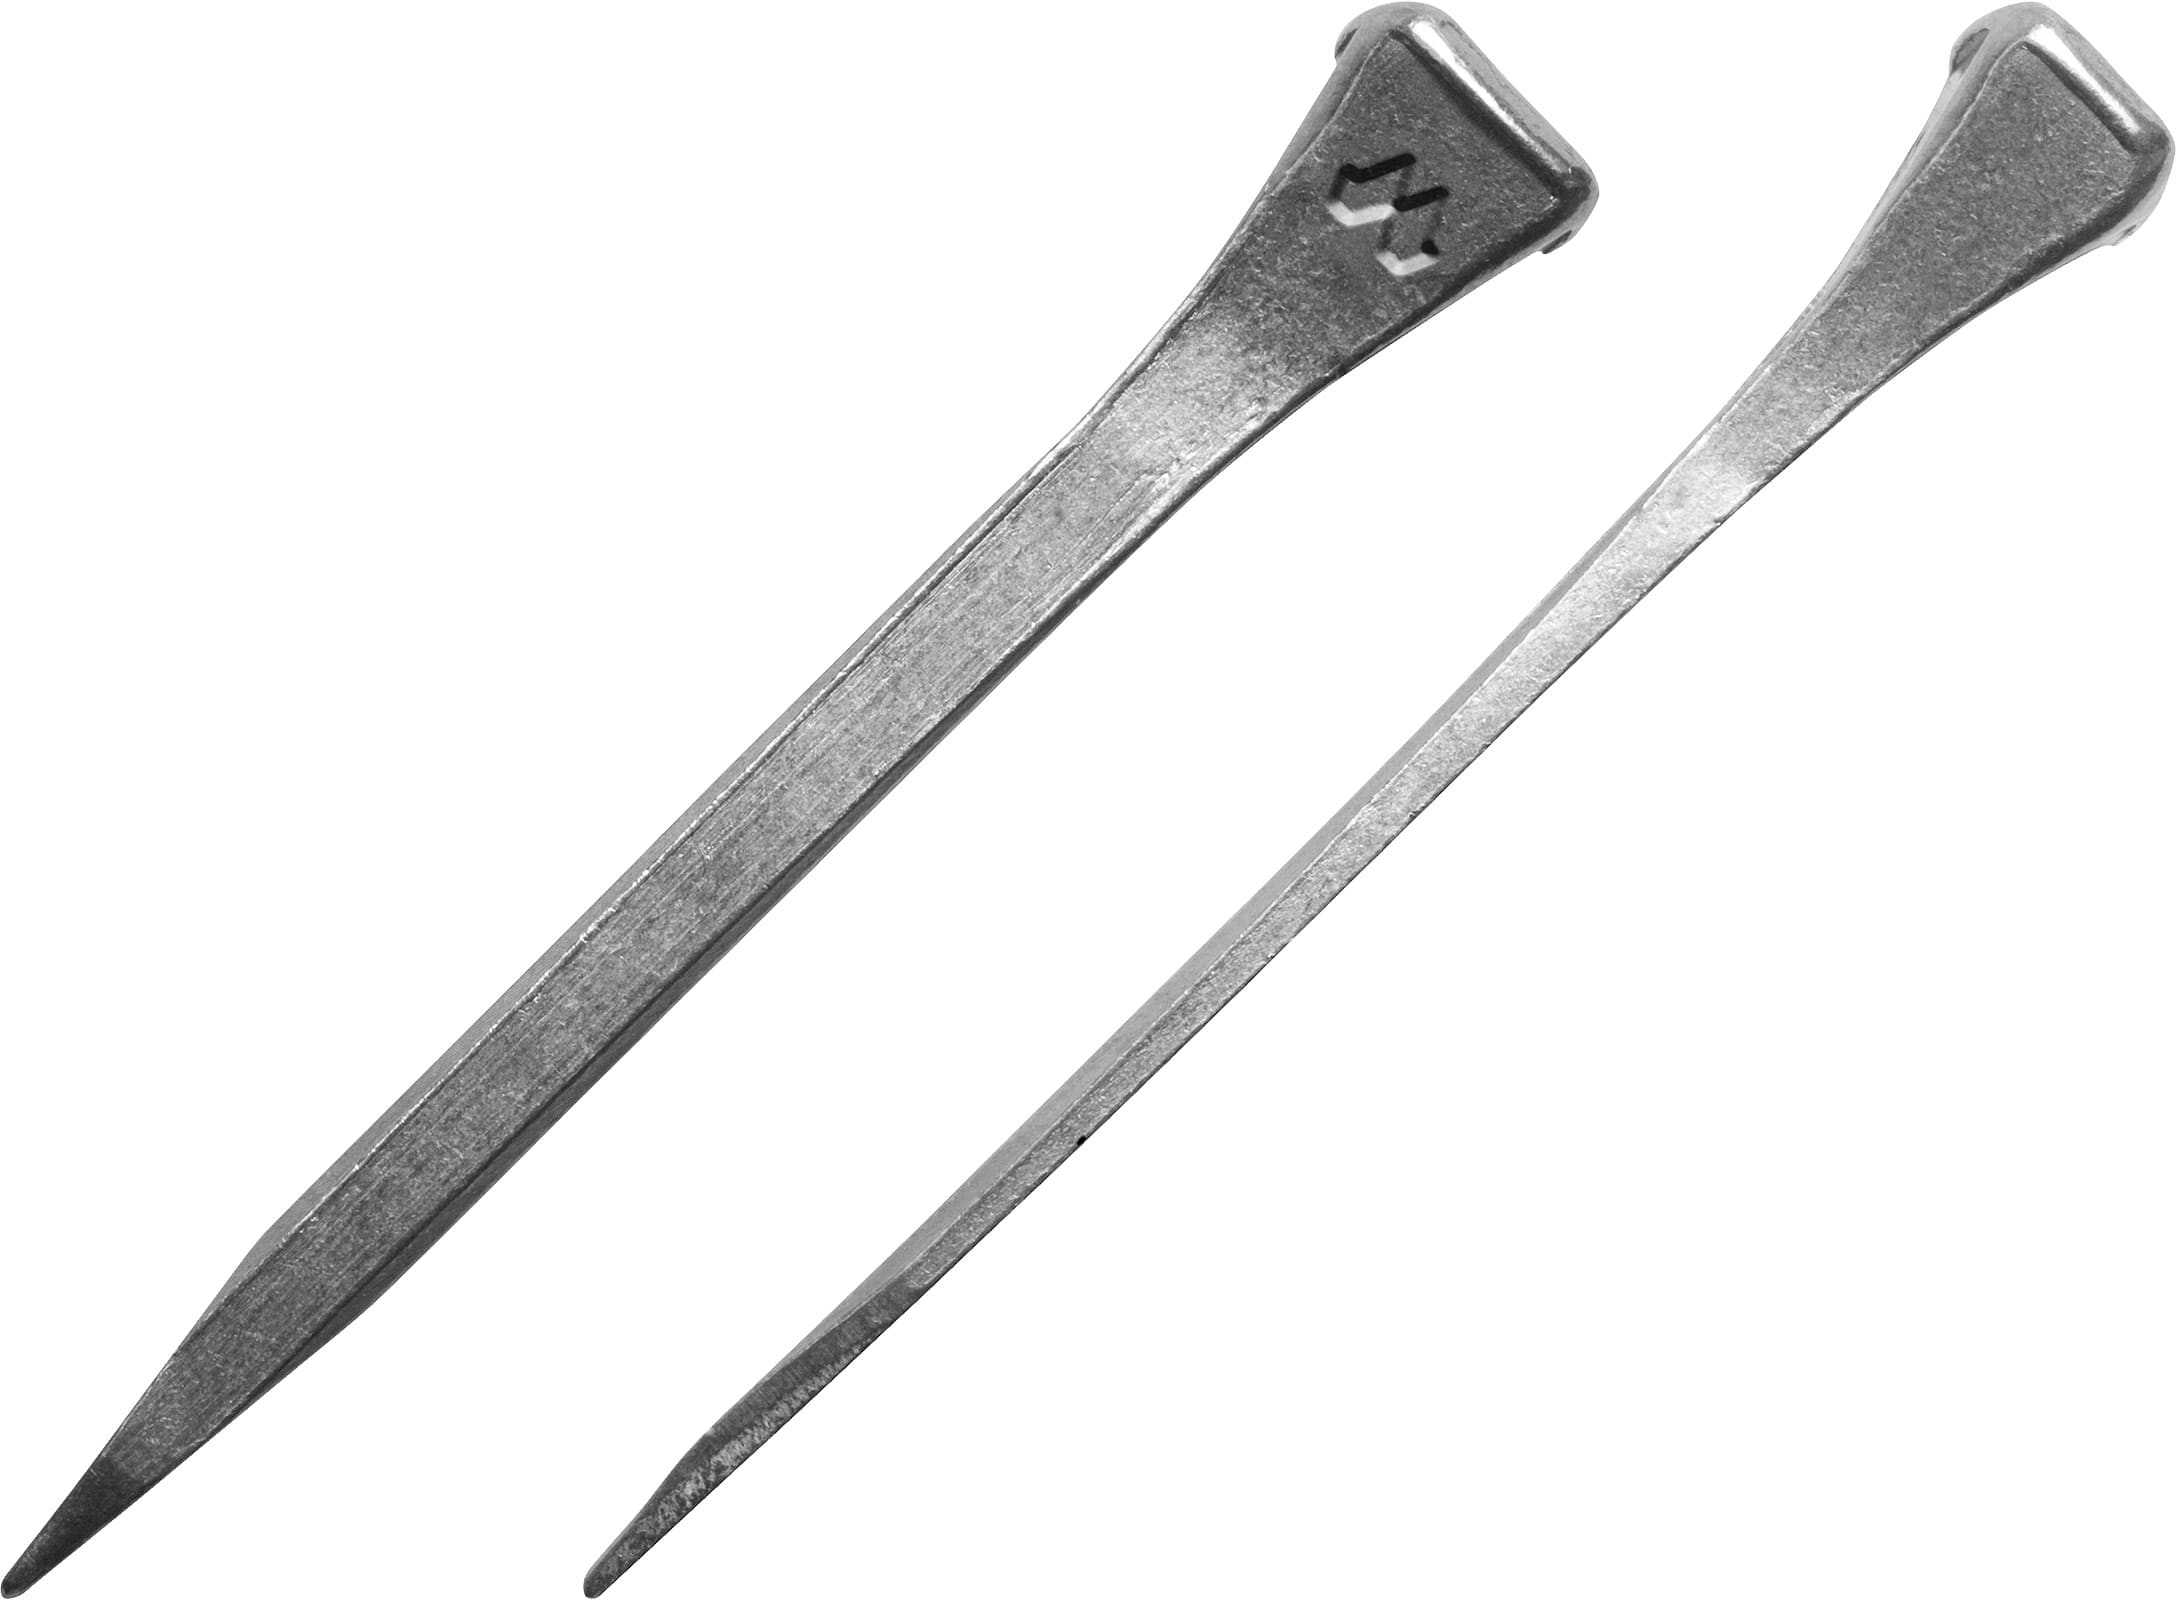 Mustad JCF hoof nails, front and side views